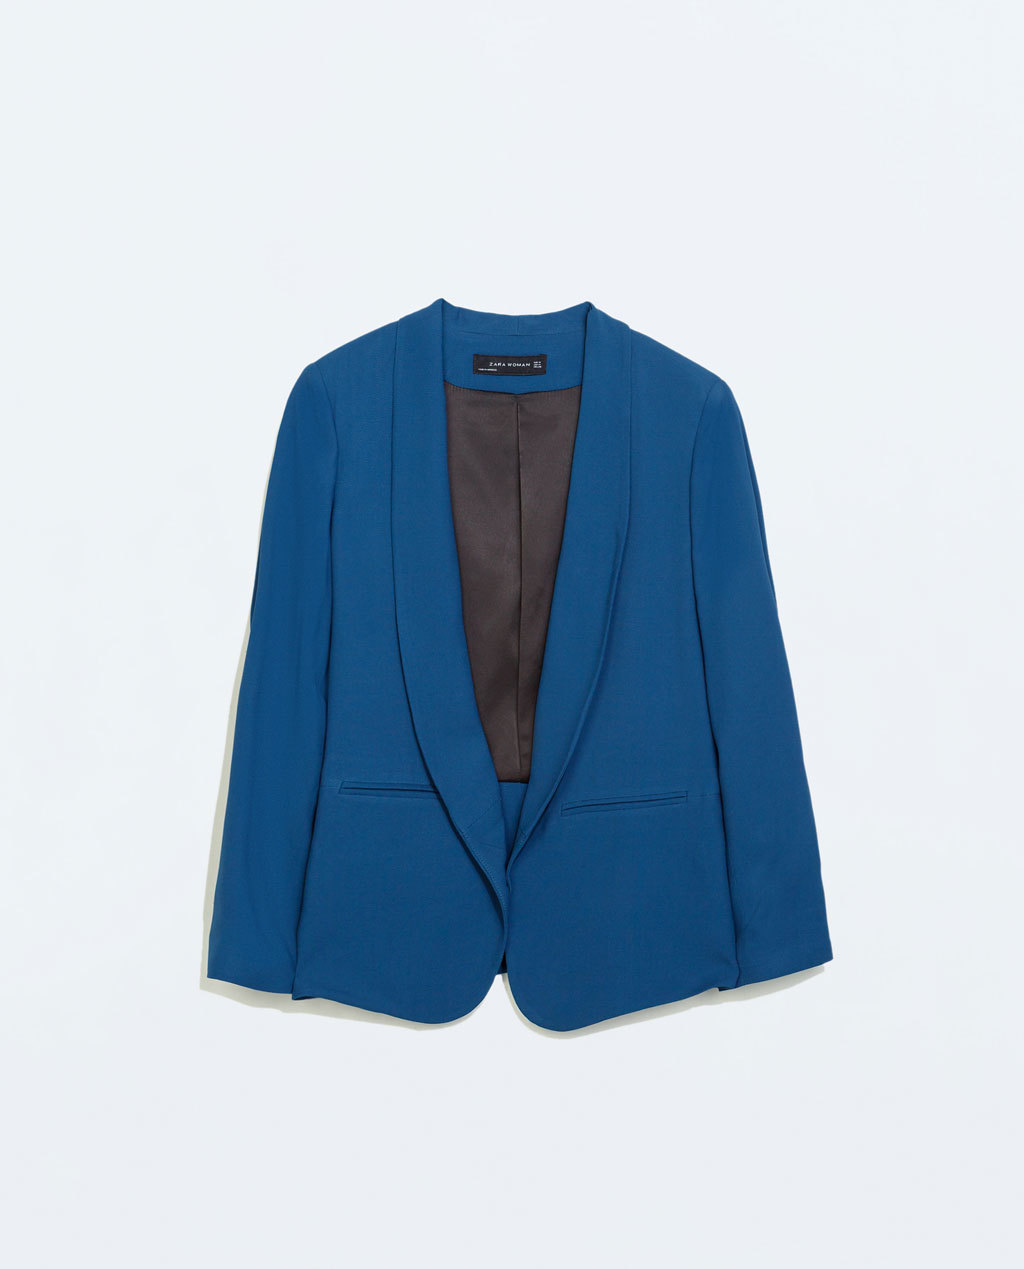 Loose Fitting Blazer With A Shawl Lapel - pattern: plain; style: single breasted blazer; collar: shawl/waterfall; fit: loose; length: below the bottom; predominant colour: royal blue; occasions: evening, creative work; sleeve length: long sleeve; sleeve style: standard; texture group: crepes; collar break: low/open; pattern type: fabric; fibres: viscose/rayon - mix; trends: zesty shades; season: a/w 2014